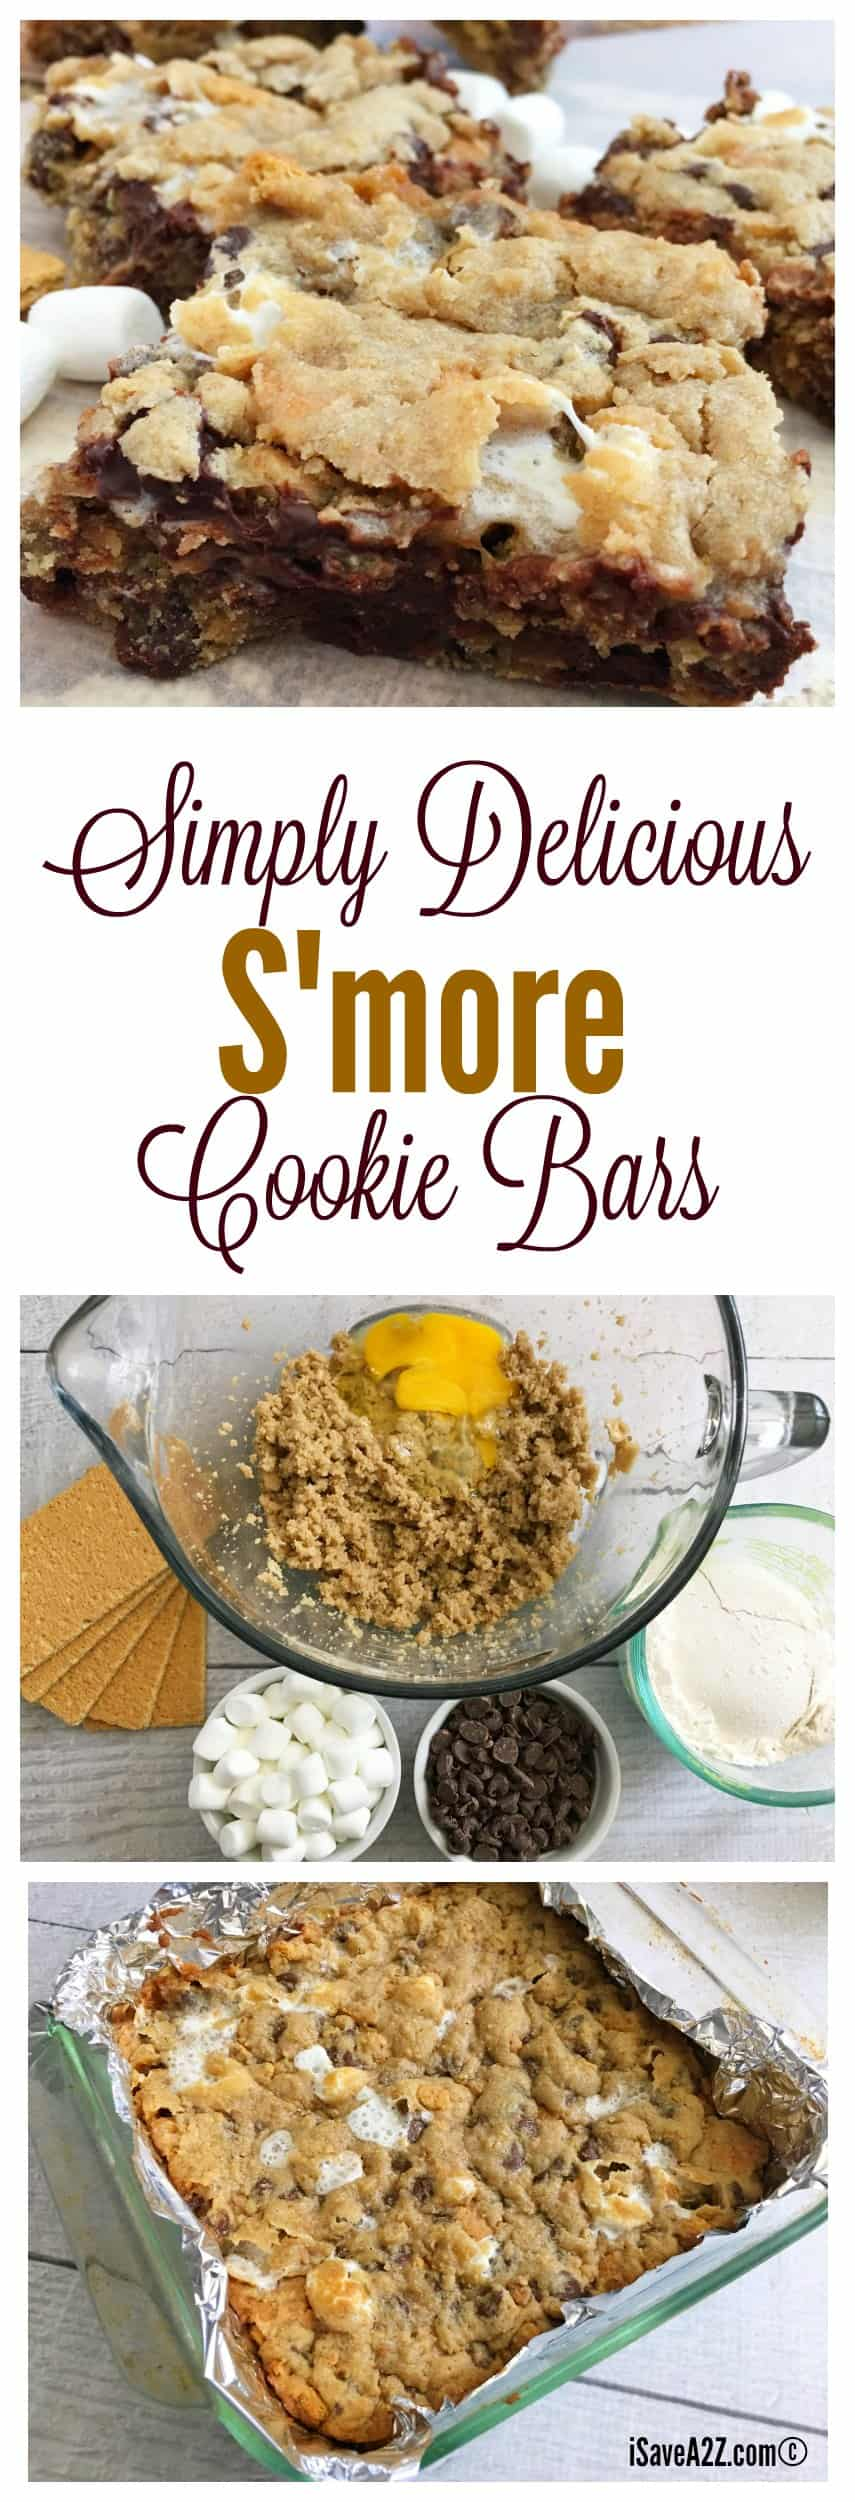 Oh yes, we did! These s'mores cookie bars are everything you want them to be, gooey, melted goodness of chocolate and marshmallows with a hint of crunch and yummy. You are going to love these!